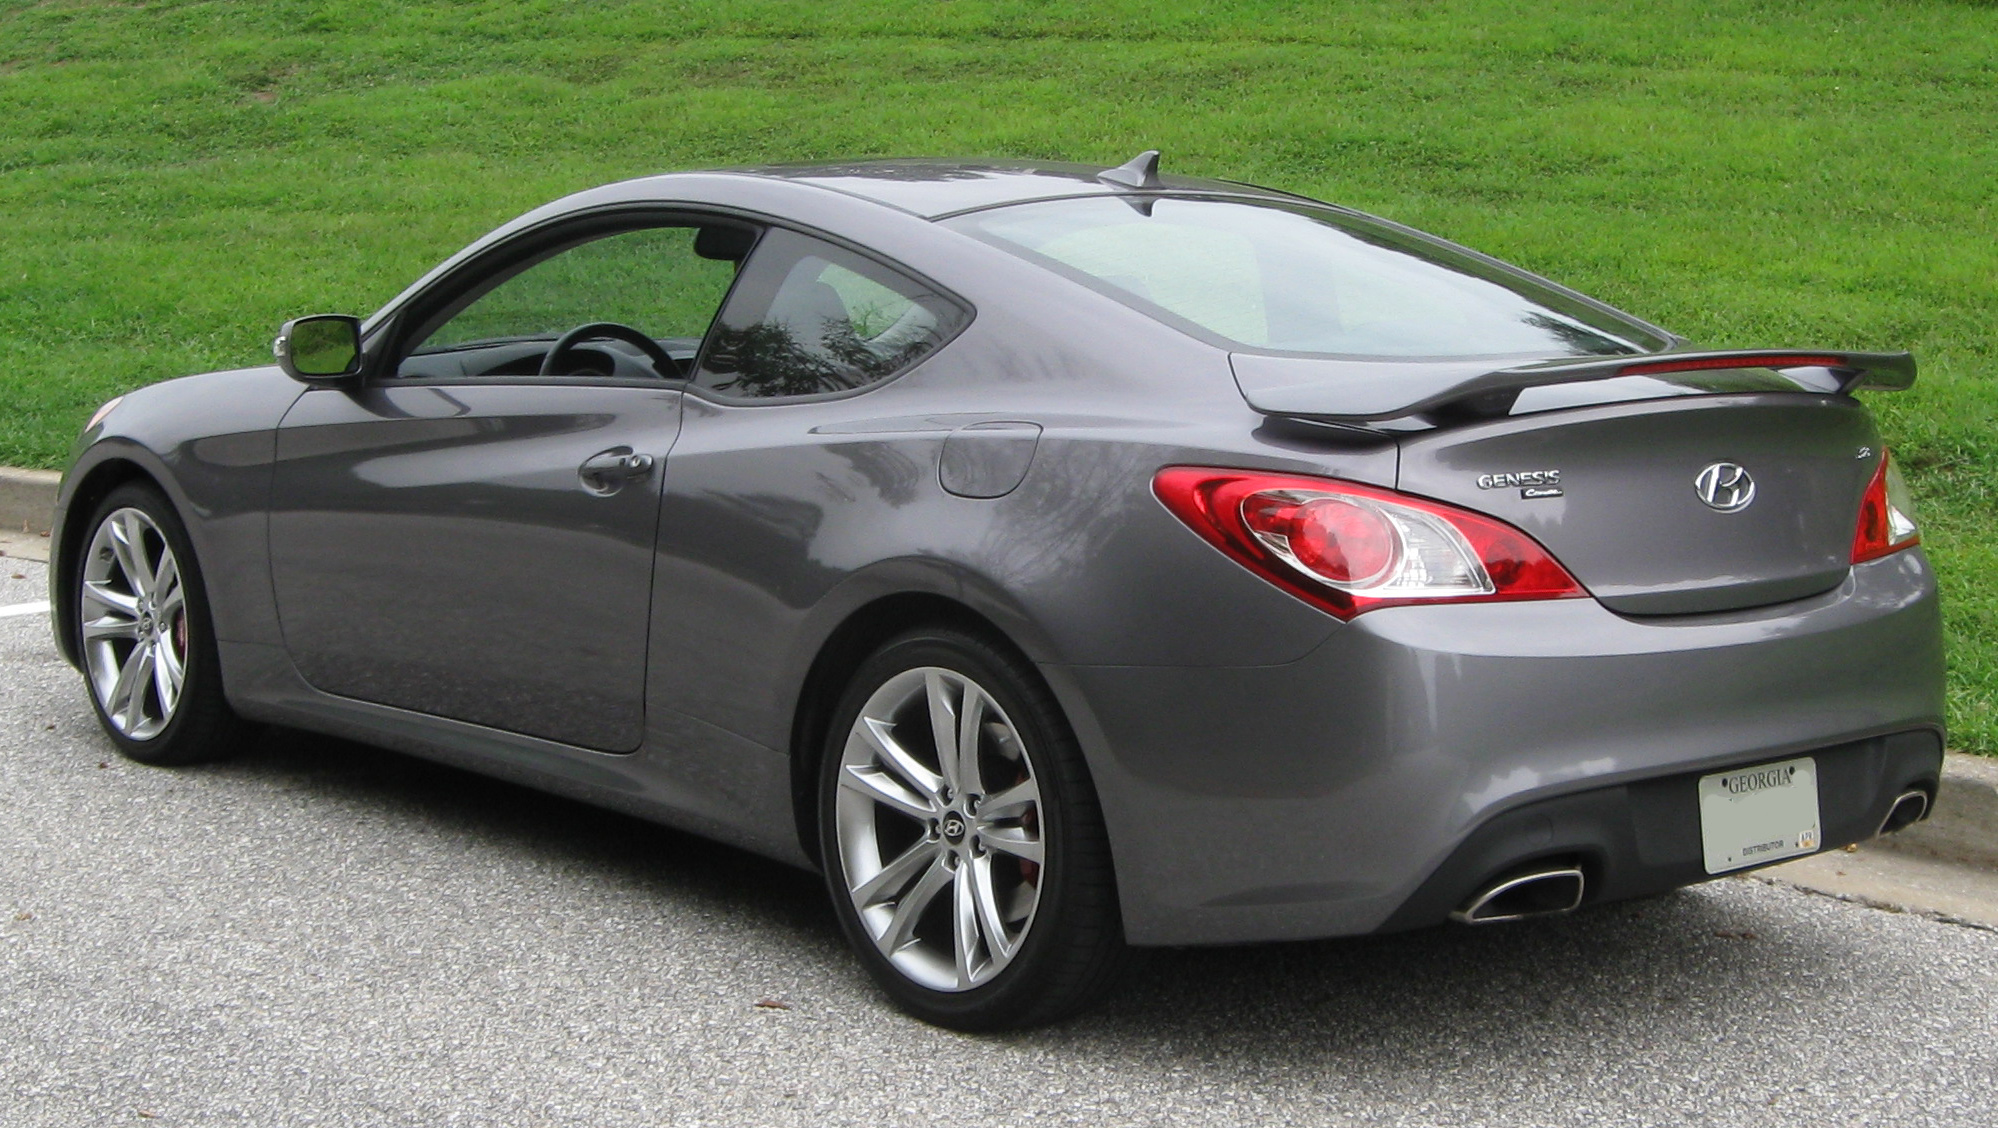 2010 hyundai genesis coupe 4. Black Bedroom Furniture Sets. Home Design Ideas